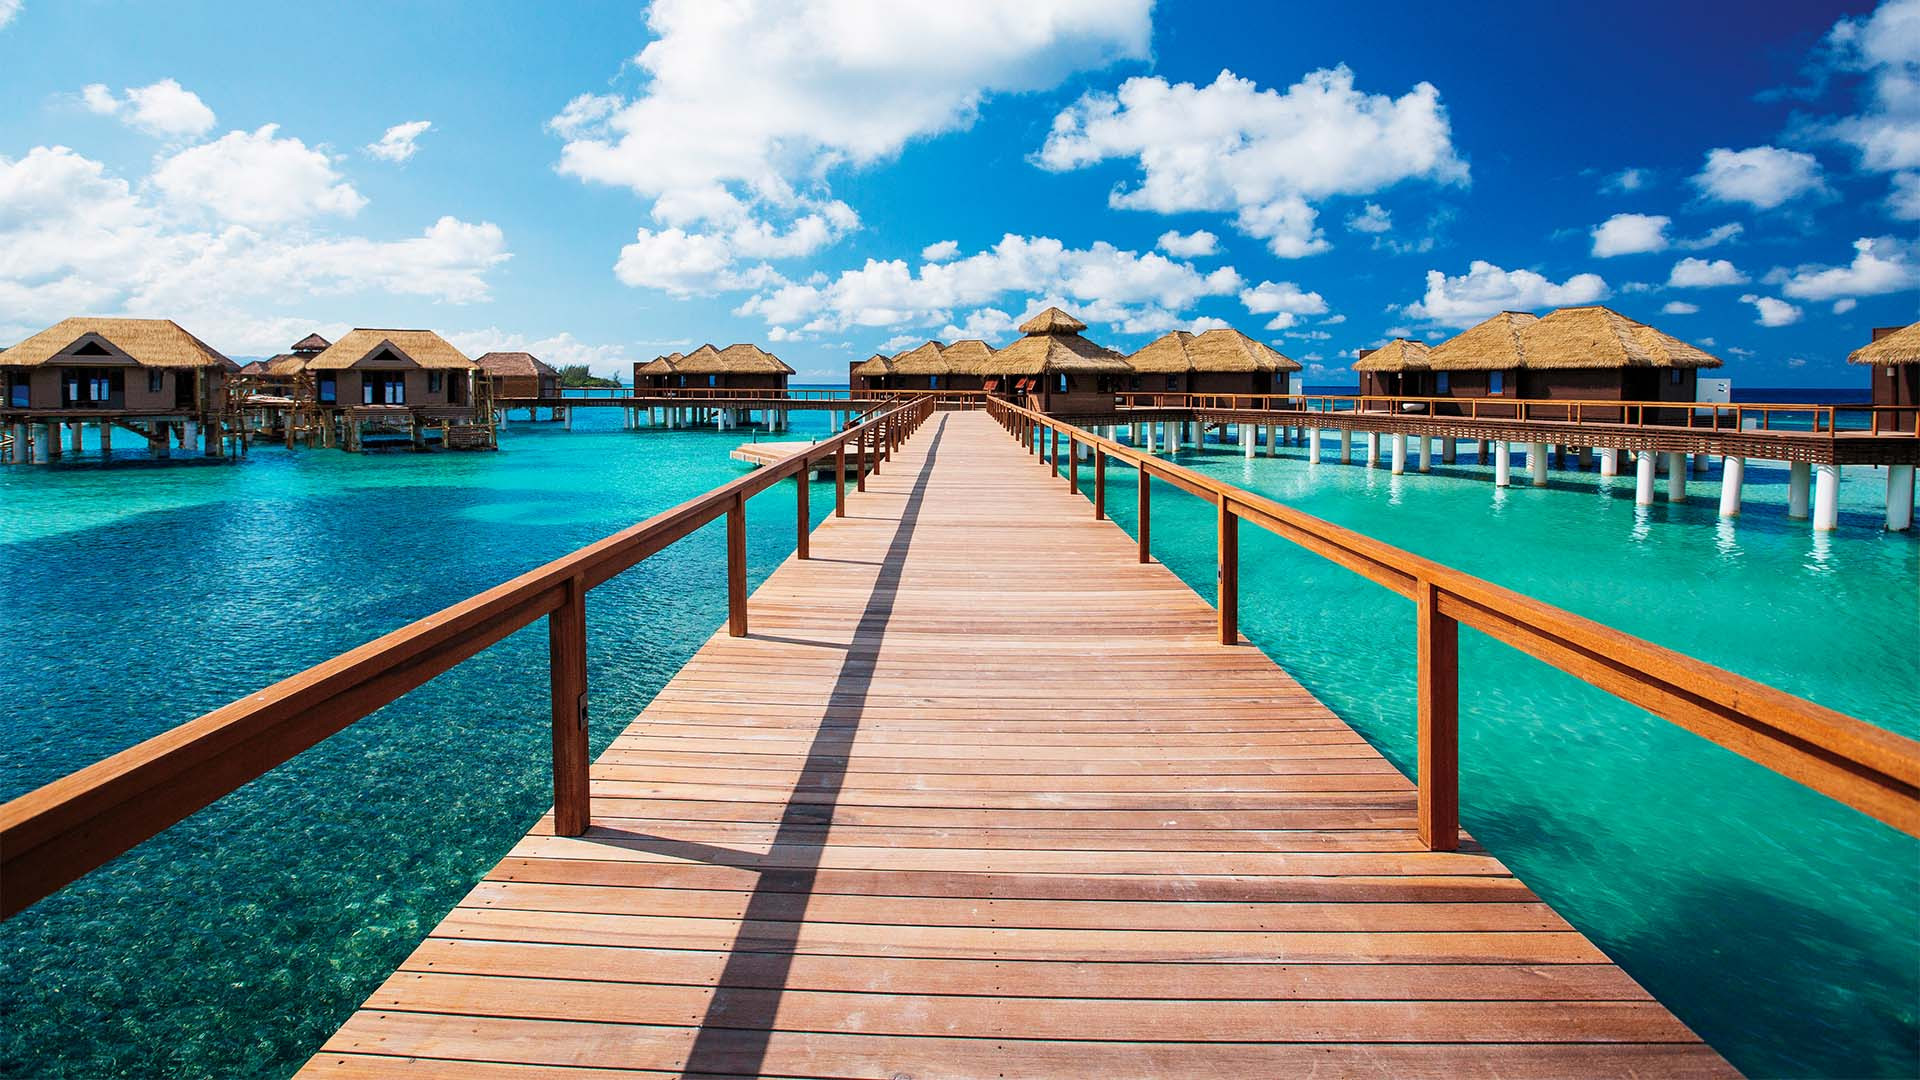 Over the water villas at Sandals Royal Caribbean